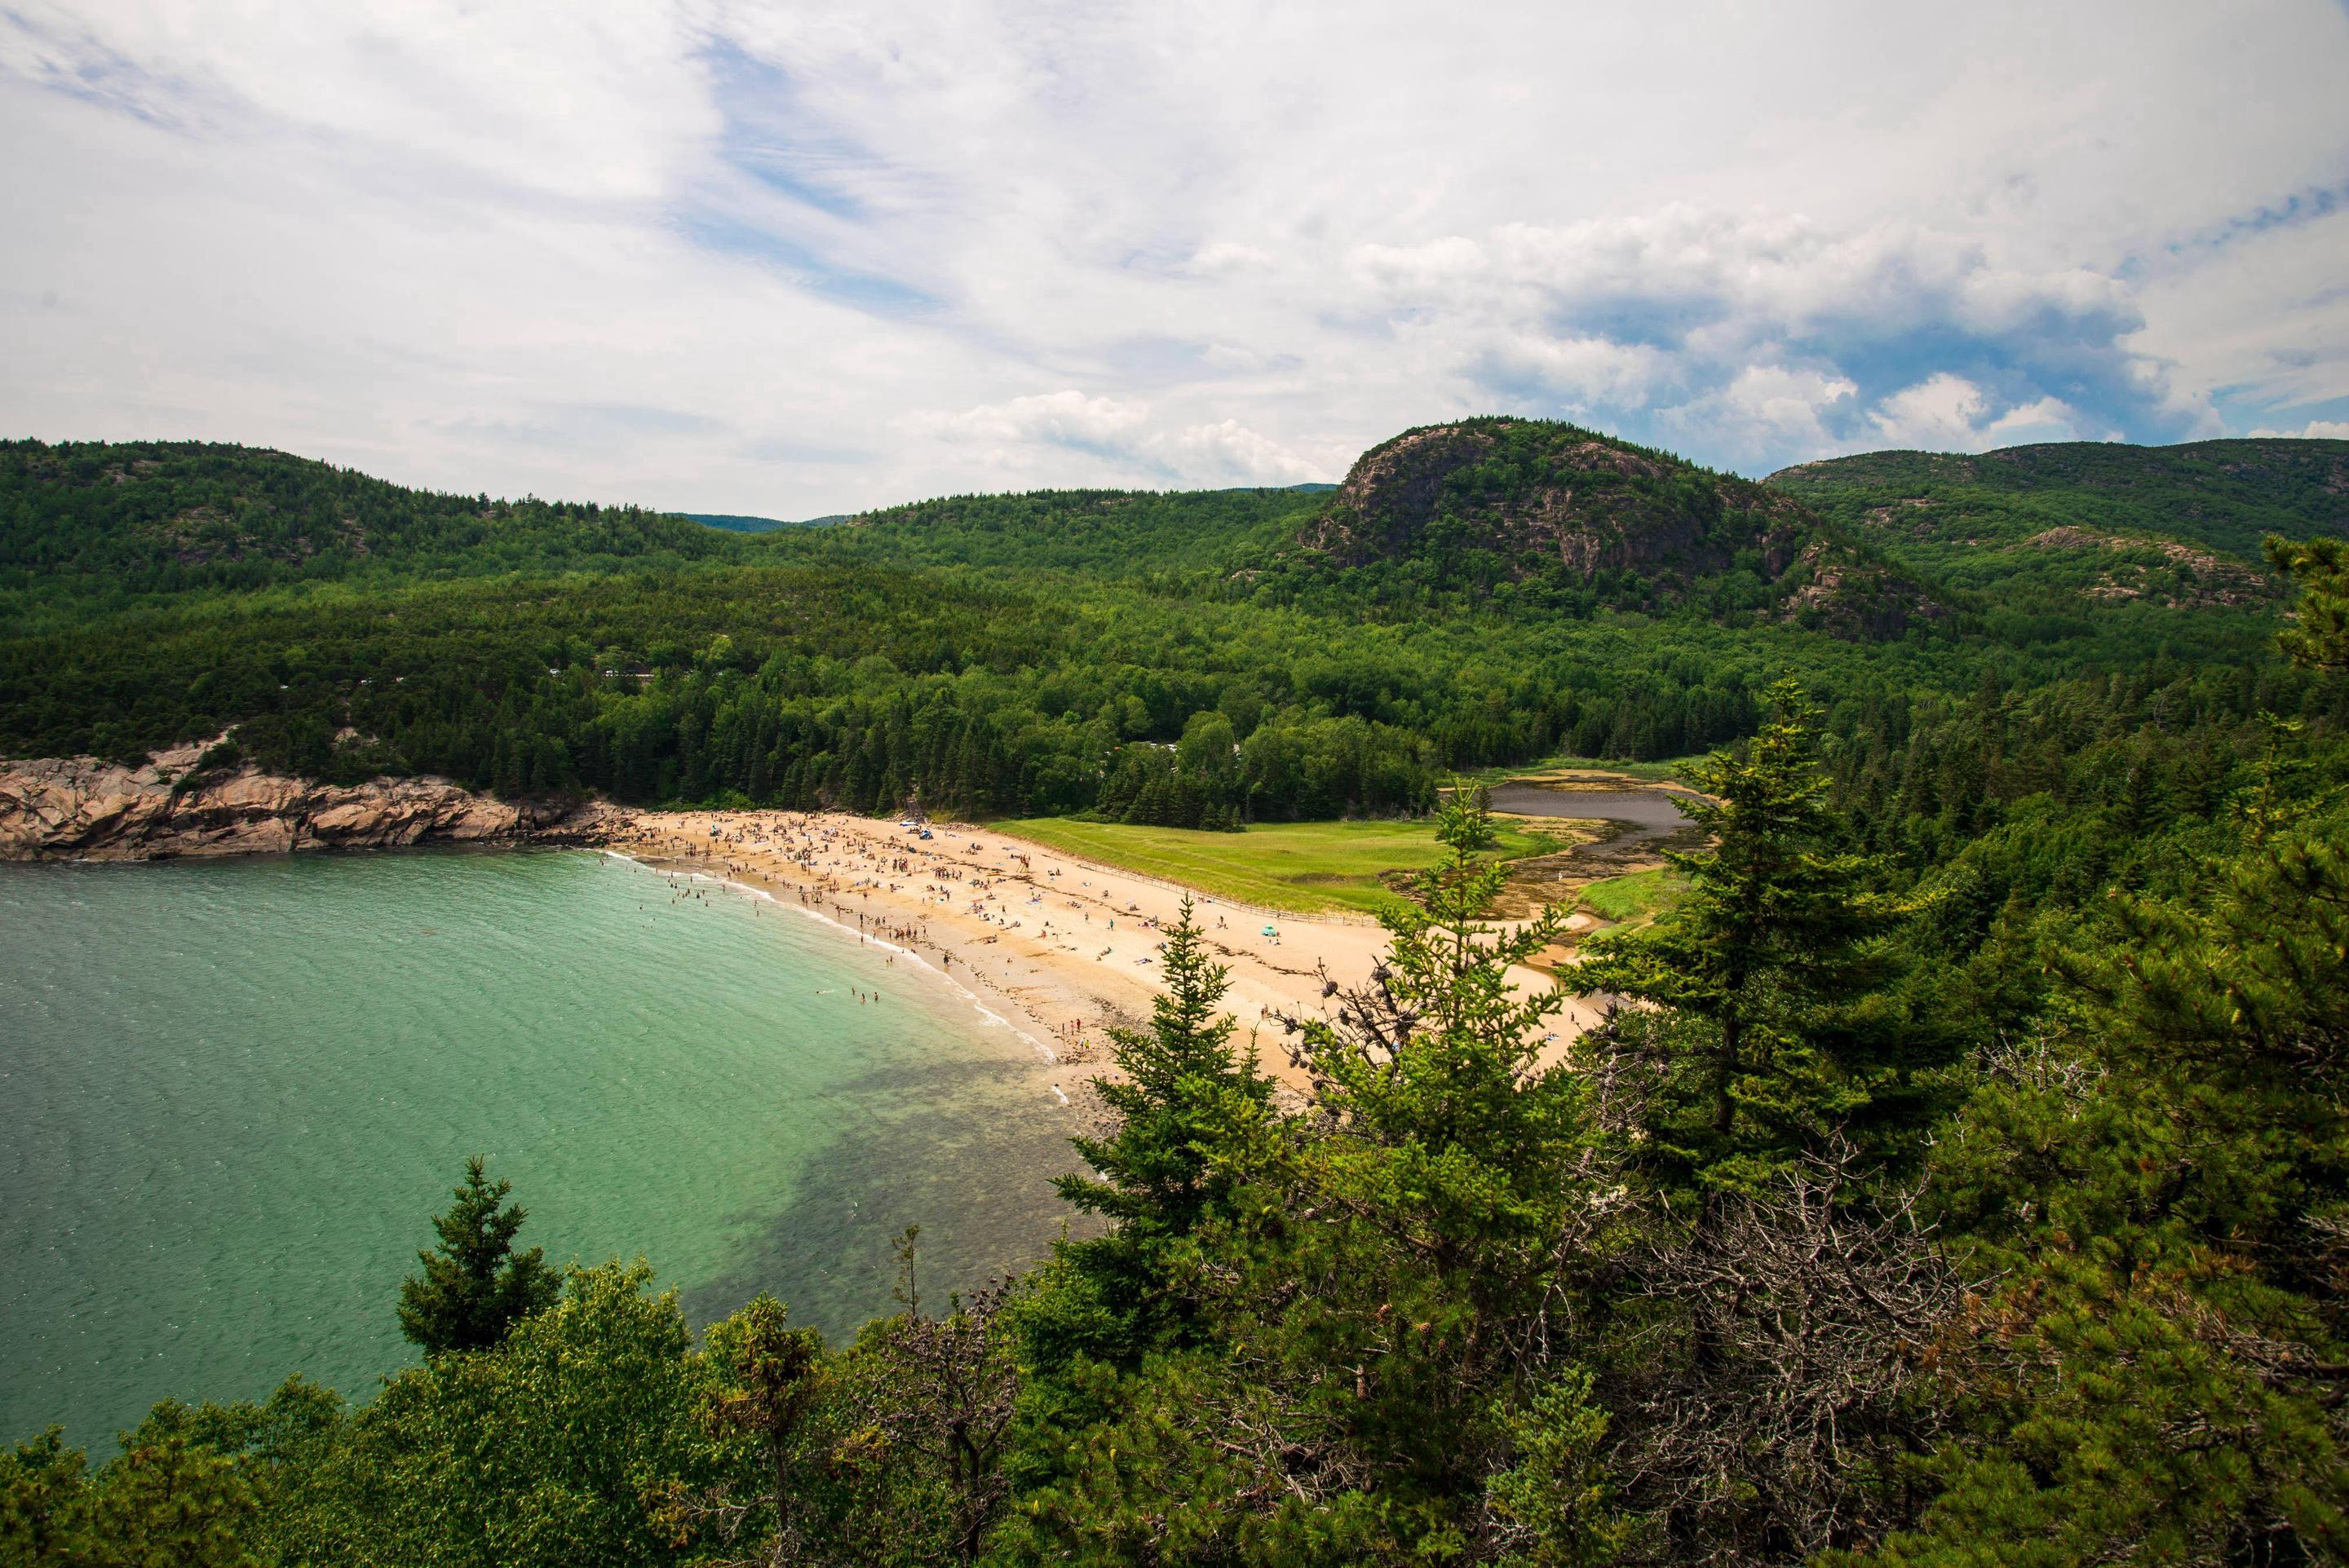 Wide beach with clear ocean waters surrounded by trees, rocky coastline, and mountainsView of Sand Beach from the Great Head Trail.